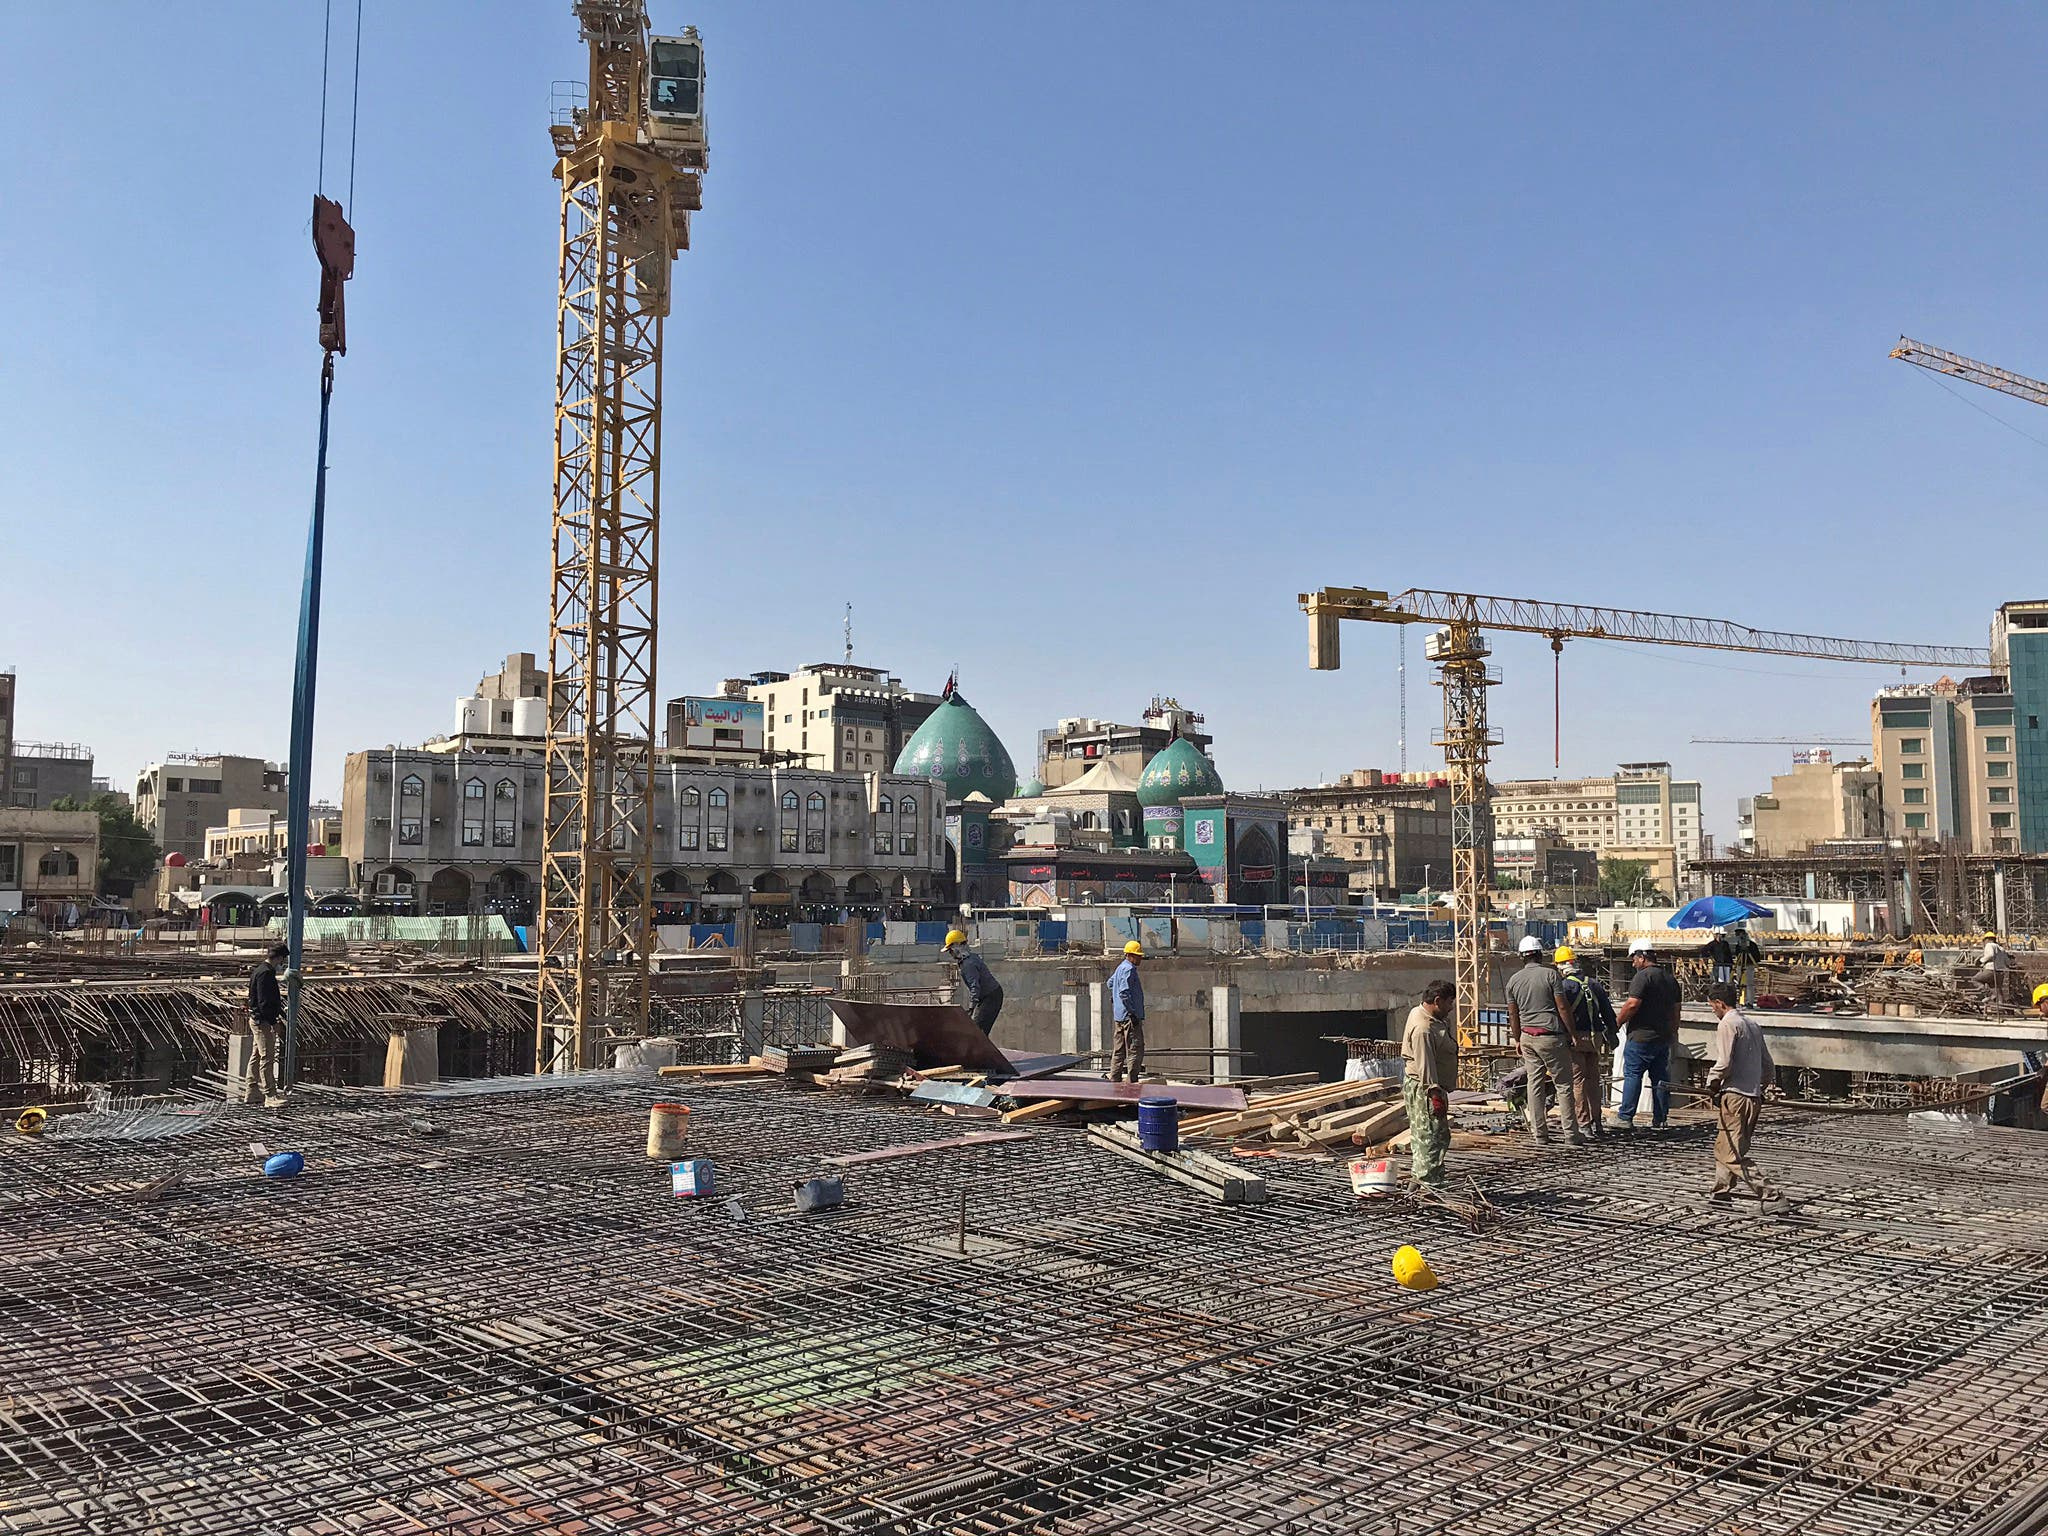 Iranian laborers and engineers work on the Sahn al-Aqila project, a vast expansion to the area adjacent to the Imam Hussein shrine that will be used to welcome mostly Shi'ite Muslim pilgrims in Kerbala, Iraq September 30, 2020. (Reuters)